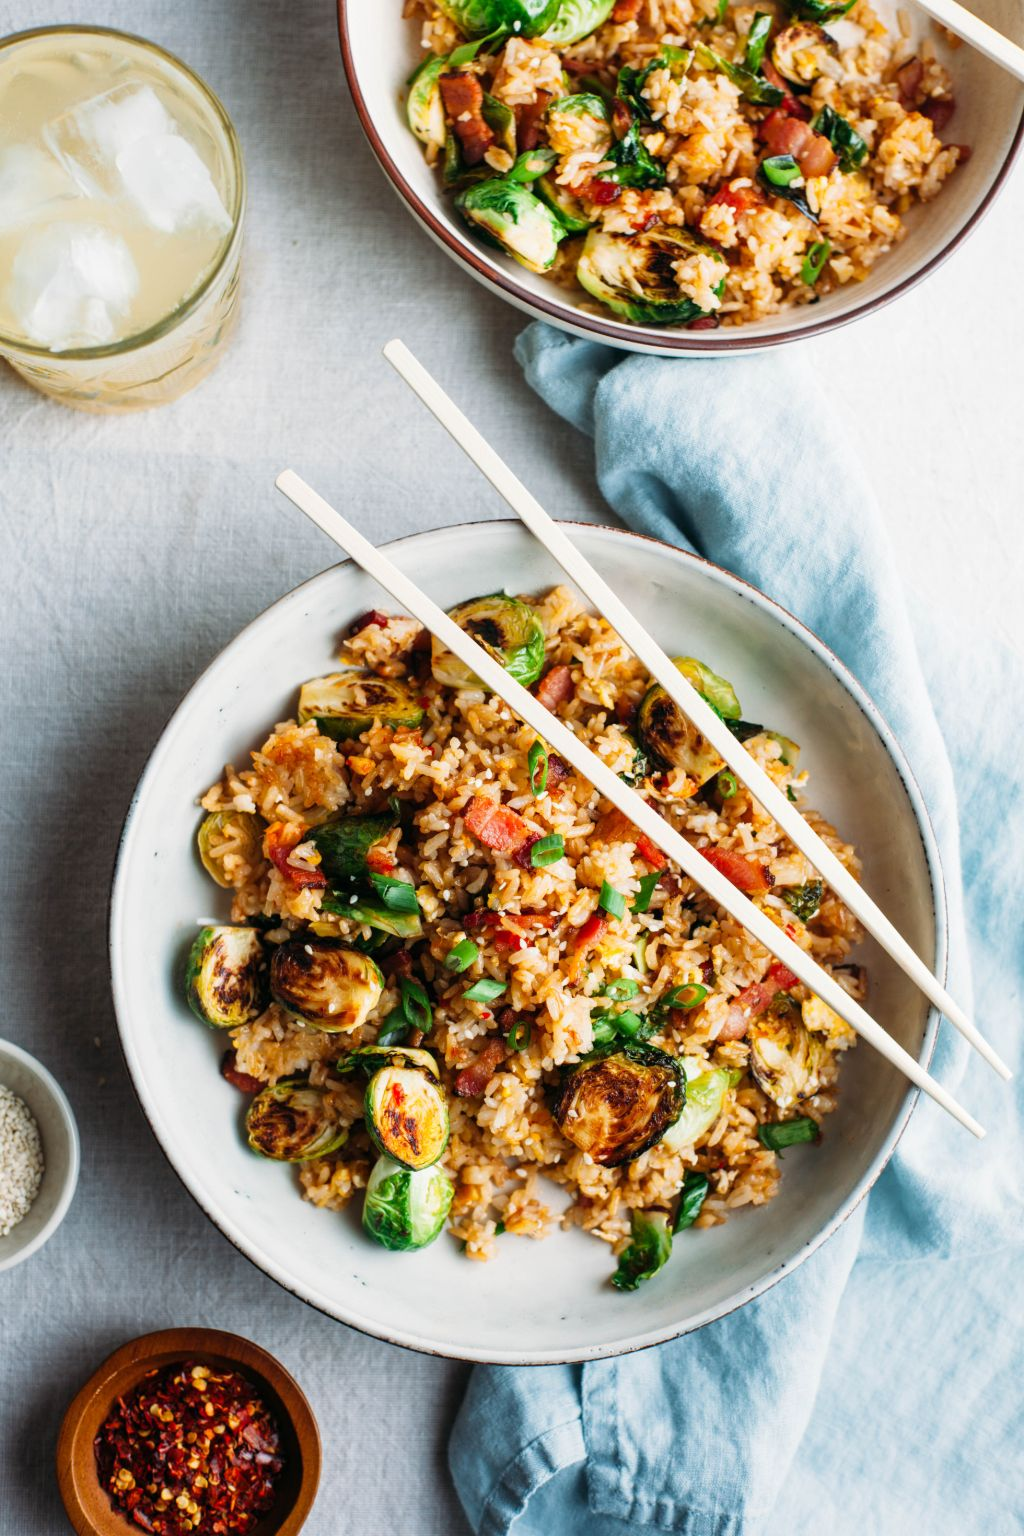 Bacon and Brussels Sprouts Fried Rice - Tastemaker Blog